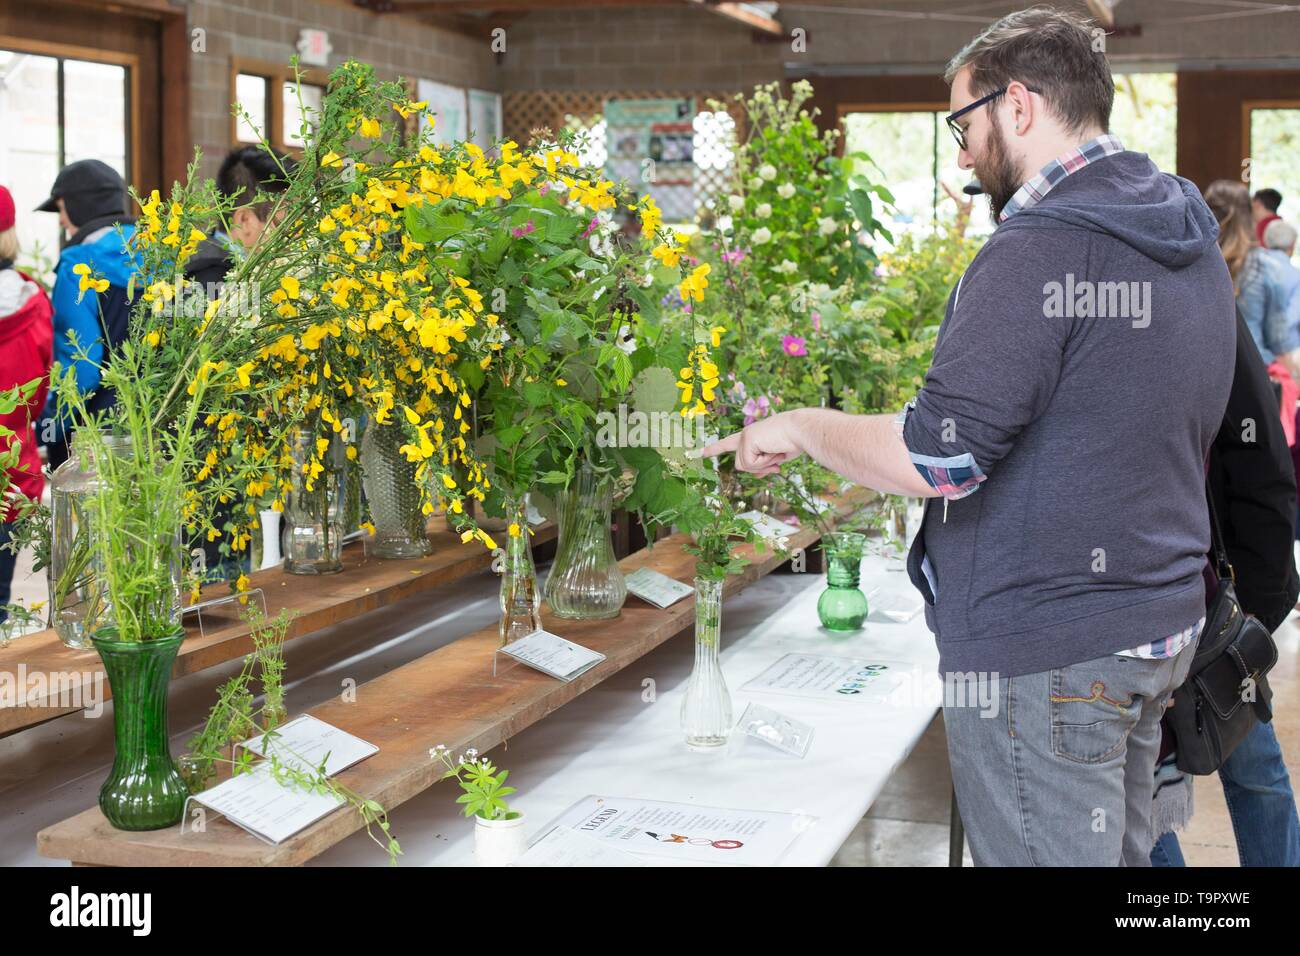 People viewing wildflower specimens on display at the Wildflower Festival at Mount Pisgah Arboretum in Eugene, Oregon, USA. - Stock Image